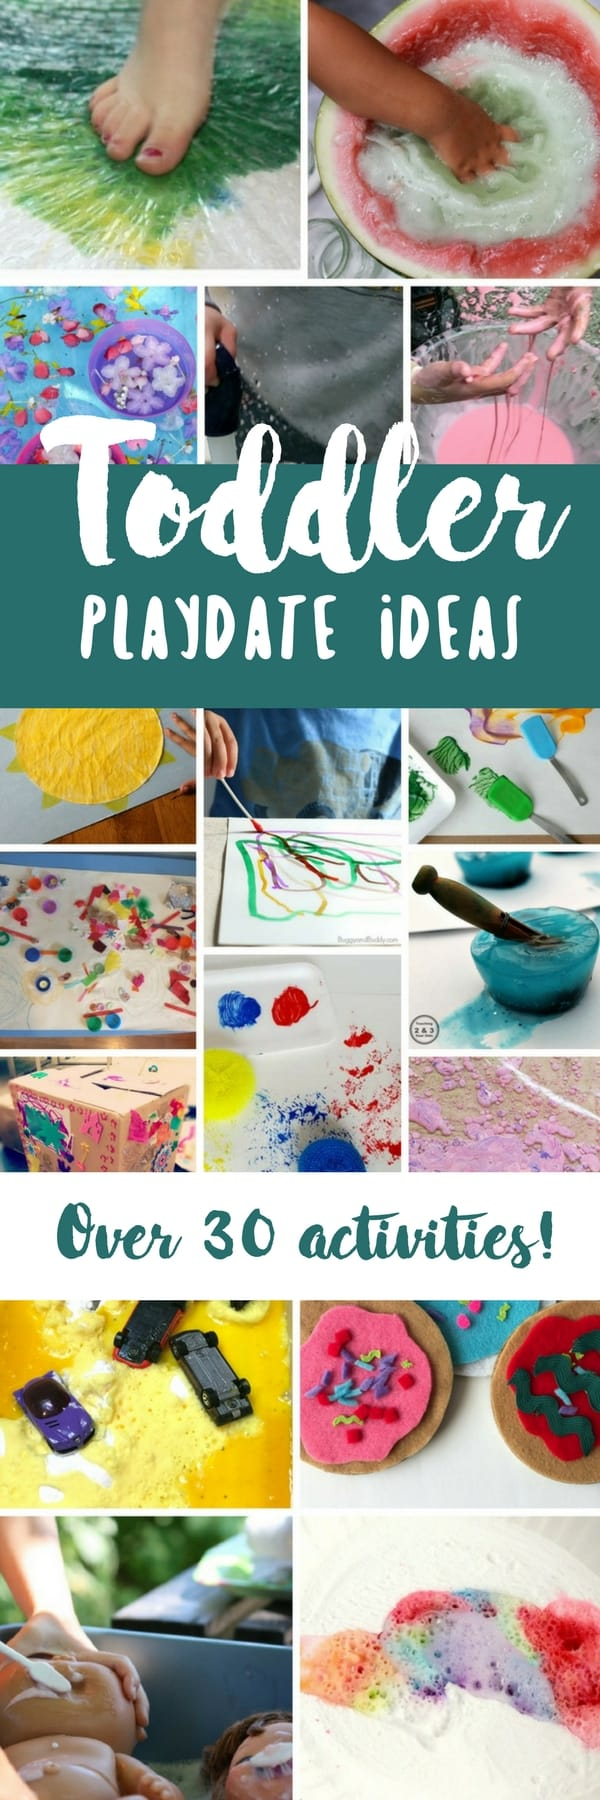 These toddler playdate ideas are perfect for fun and social skill building for 1 and 2 year olds.